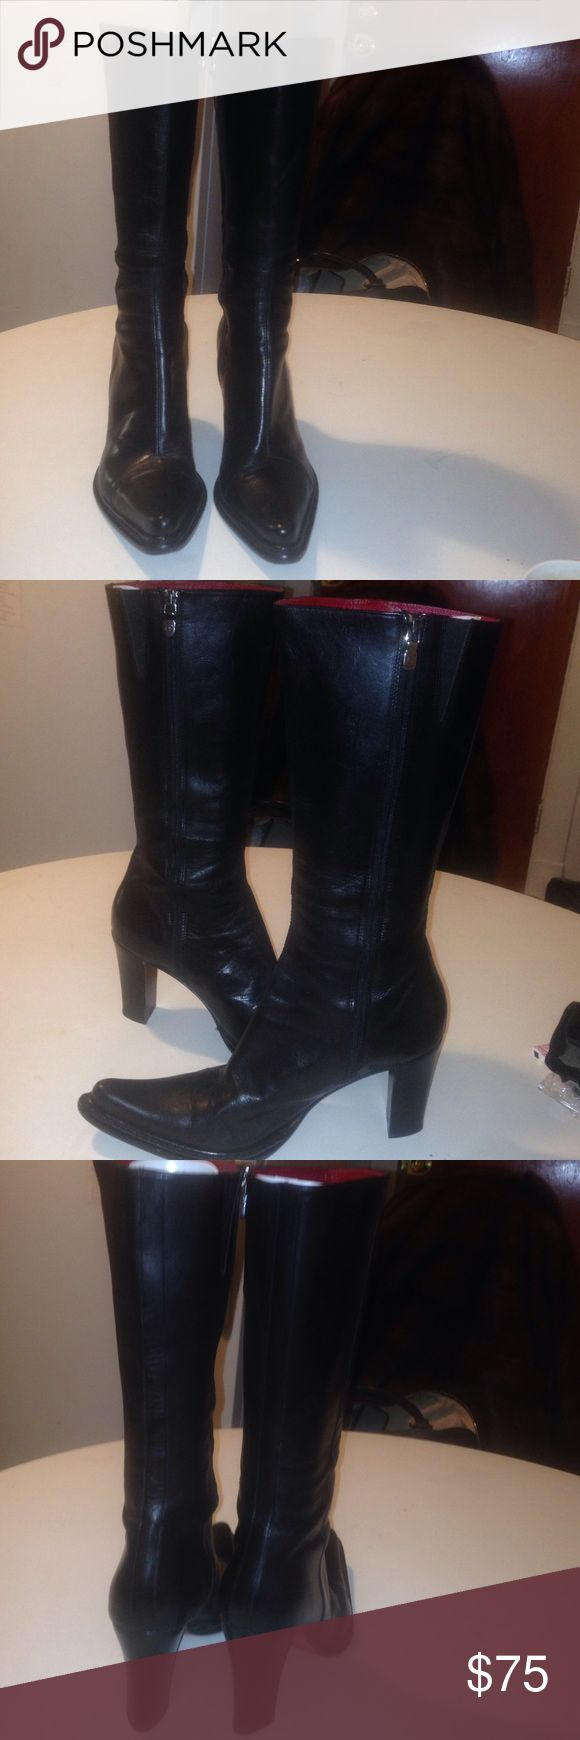 Donald Pliner boots Above calf 3.5' heel boot. Zips on inner leg. Signature zipper fly. Lined in red leather. Leather soles. 15' Calfs. No Knicks on heels. Very good & durable condition boots. Comfy & stylish Donald J. Pliner Shoes Winter & Rain Boots